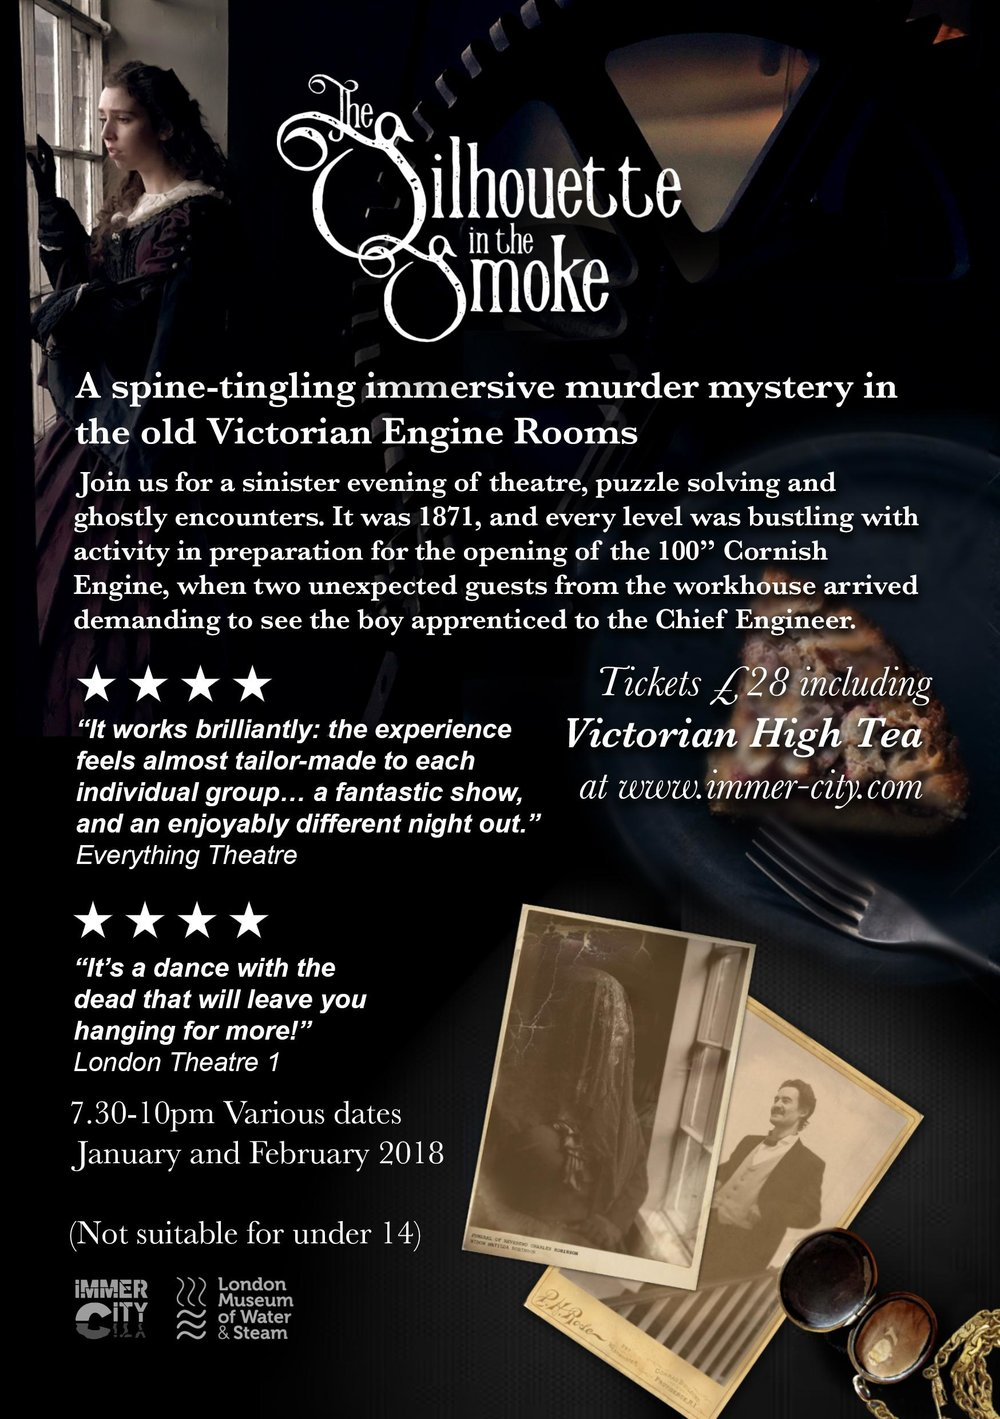 1104027_1_the-silhouette-in-the-smoke_eflyer.jpg